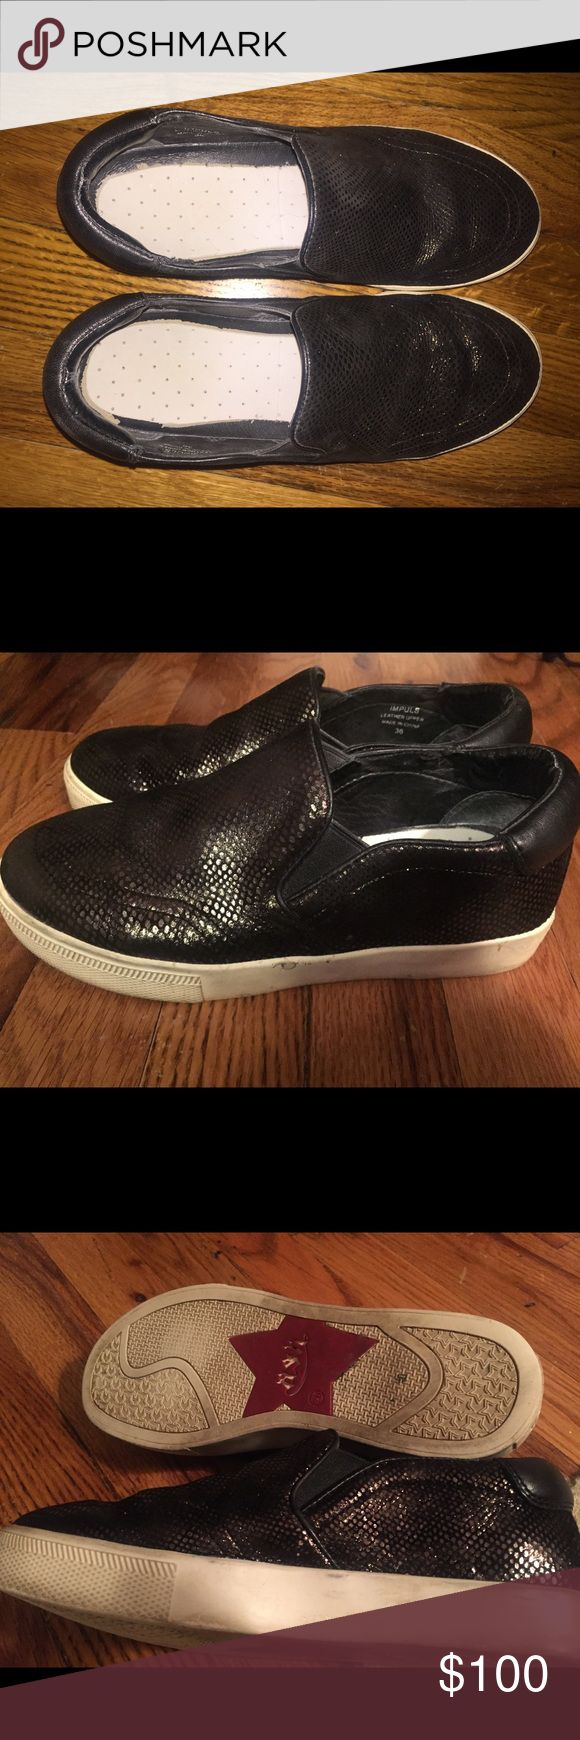 ASH sneakers Black ASH sneakers.  Good condition.  Size 6 Ash Shoes Flats & Loafers